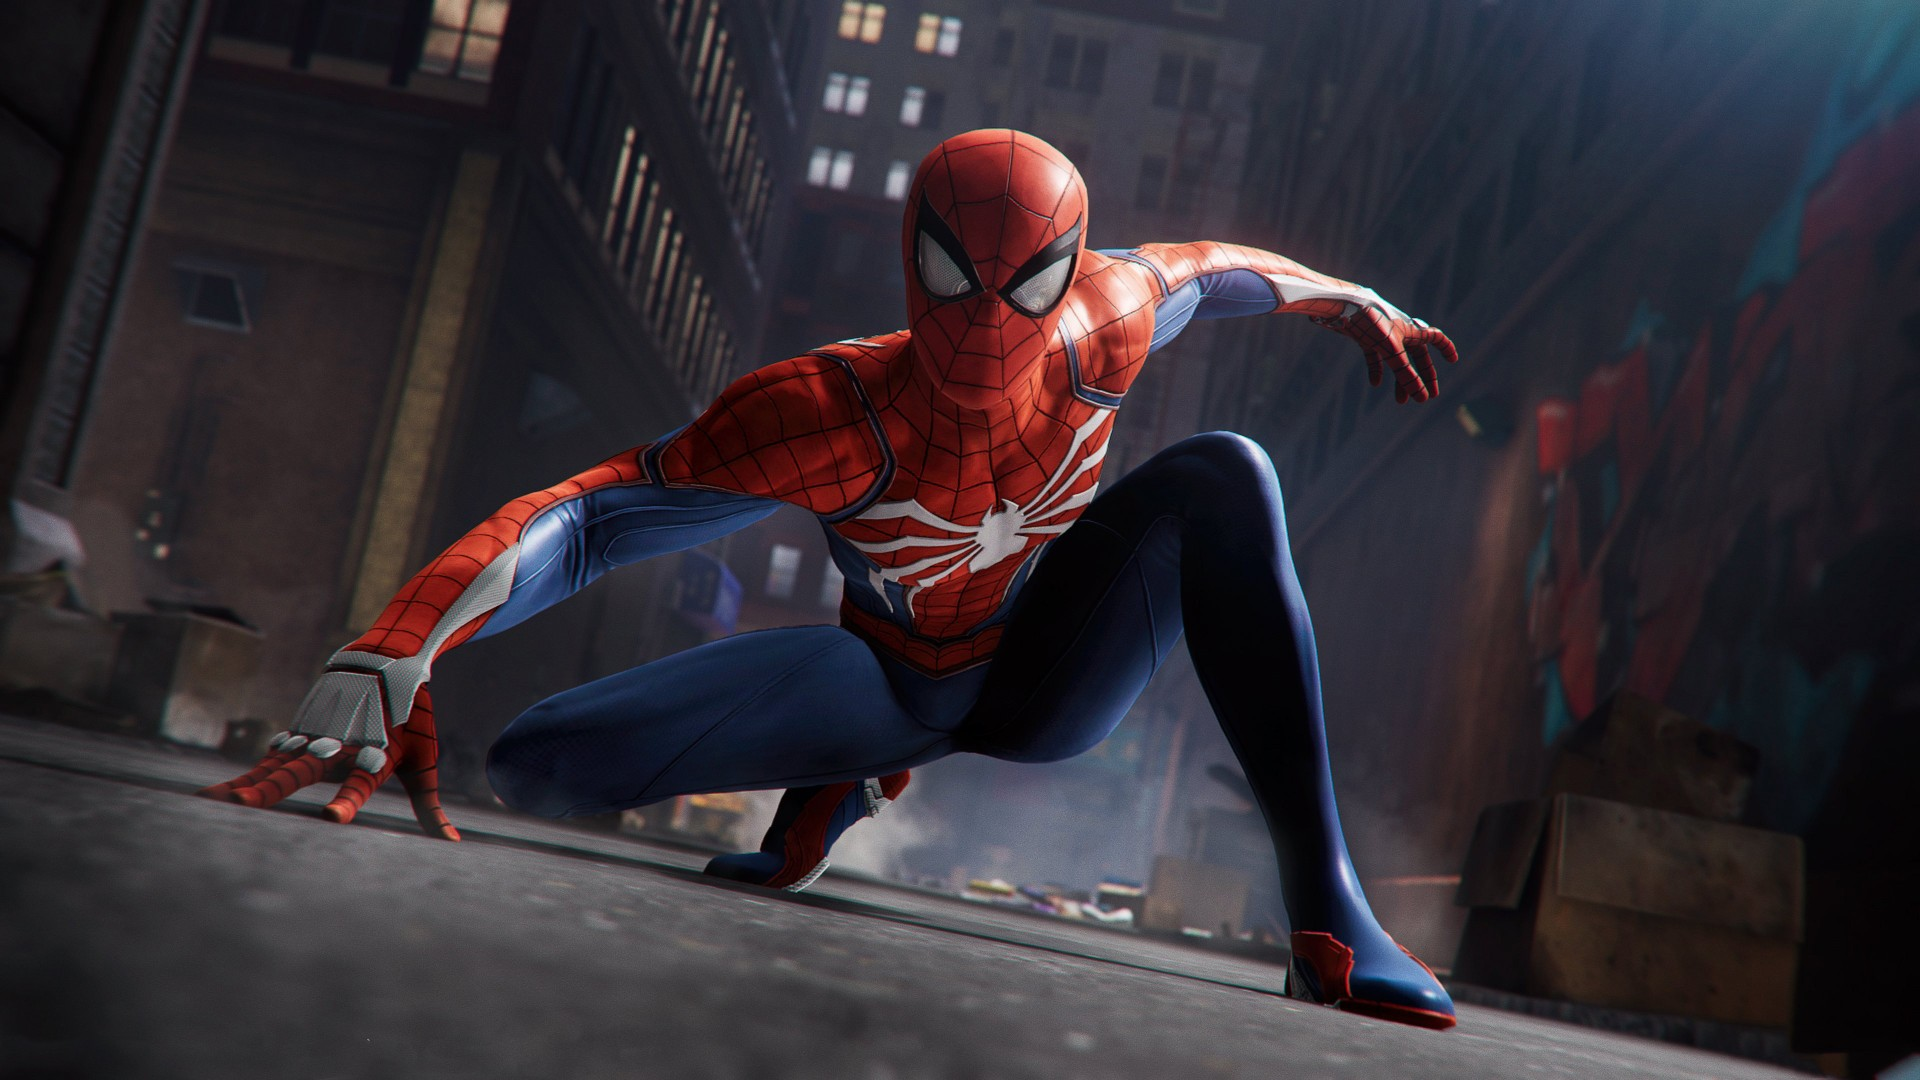 Spiderman Games Spider Man Ps4 Game 4k Wallpapers Hd Wallpapers Id 23854